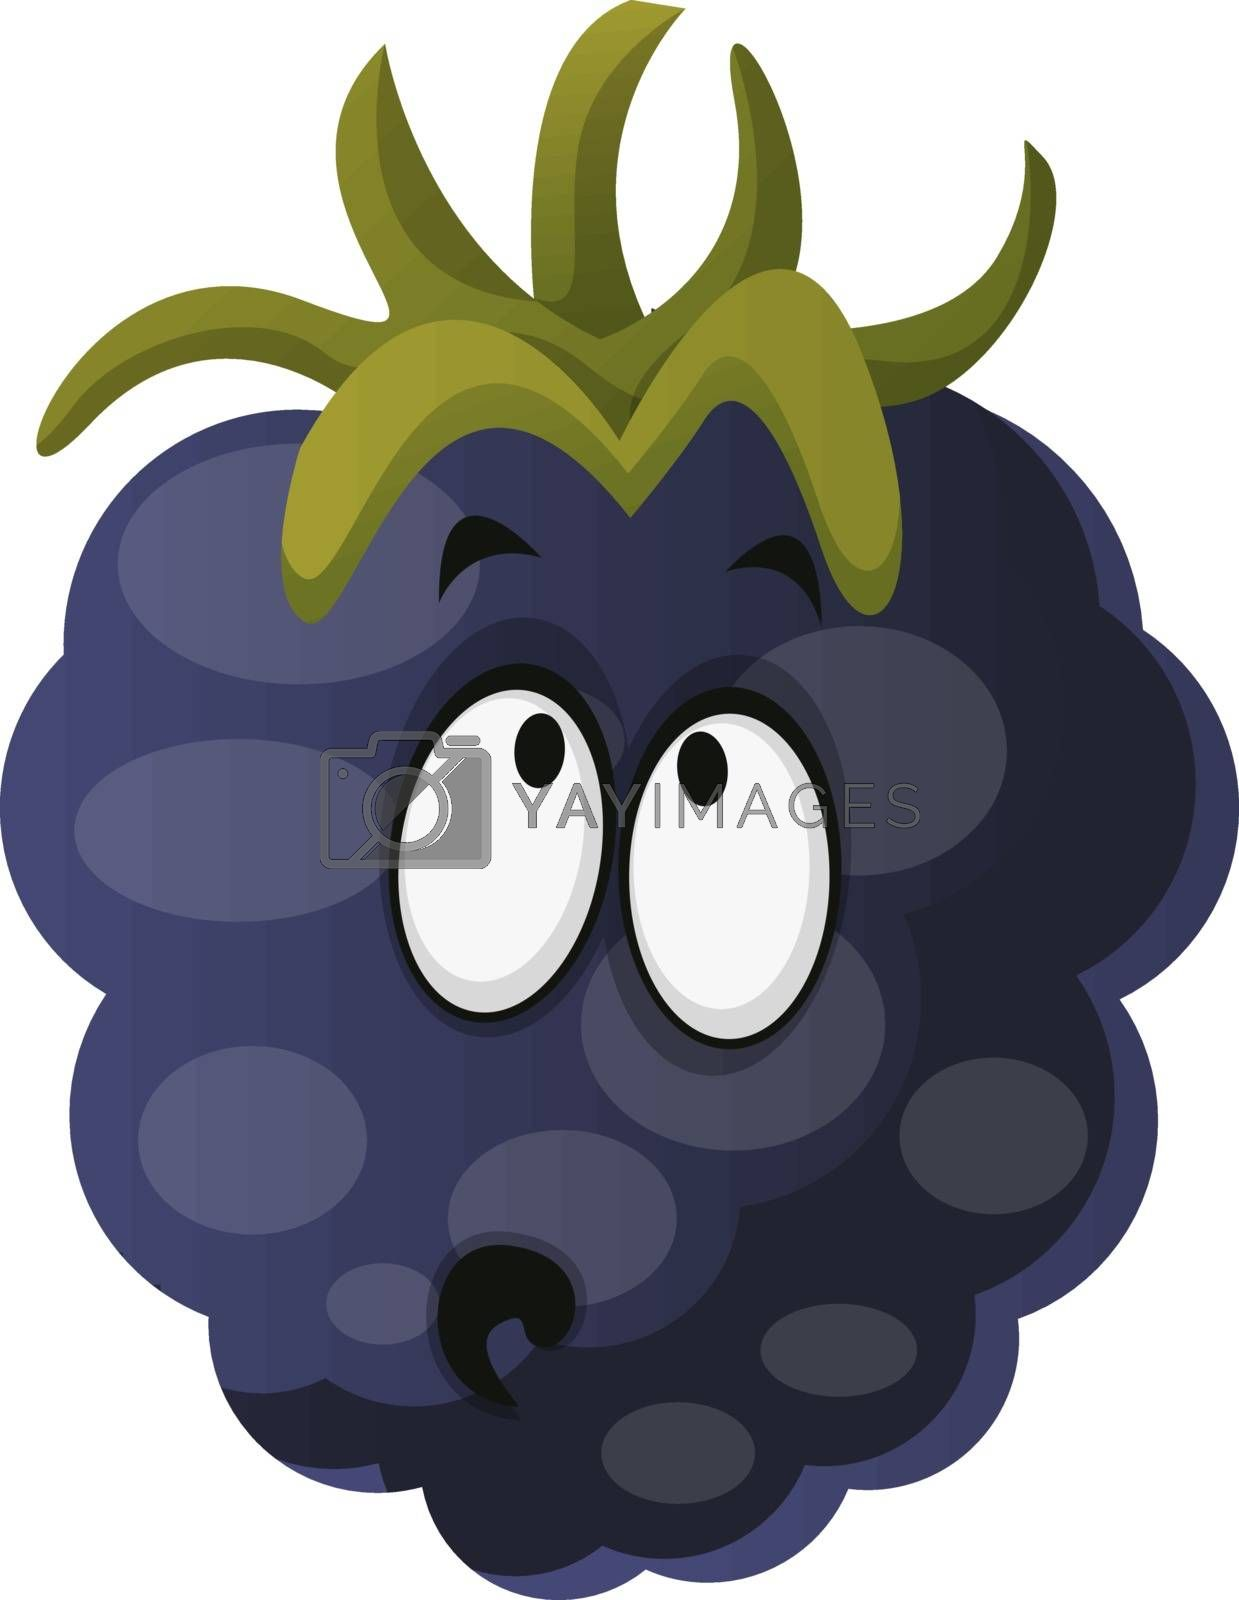 Royalty free image of Amazed mulberry monster illustration vector on white background by Morphart